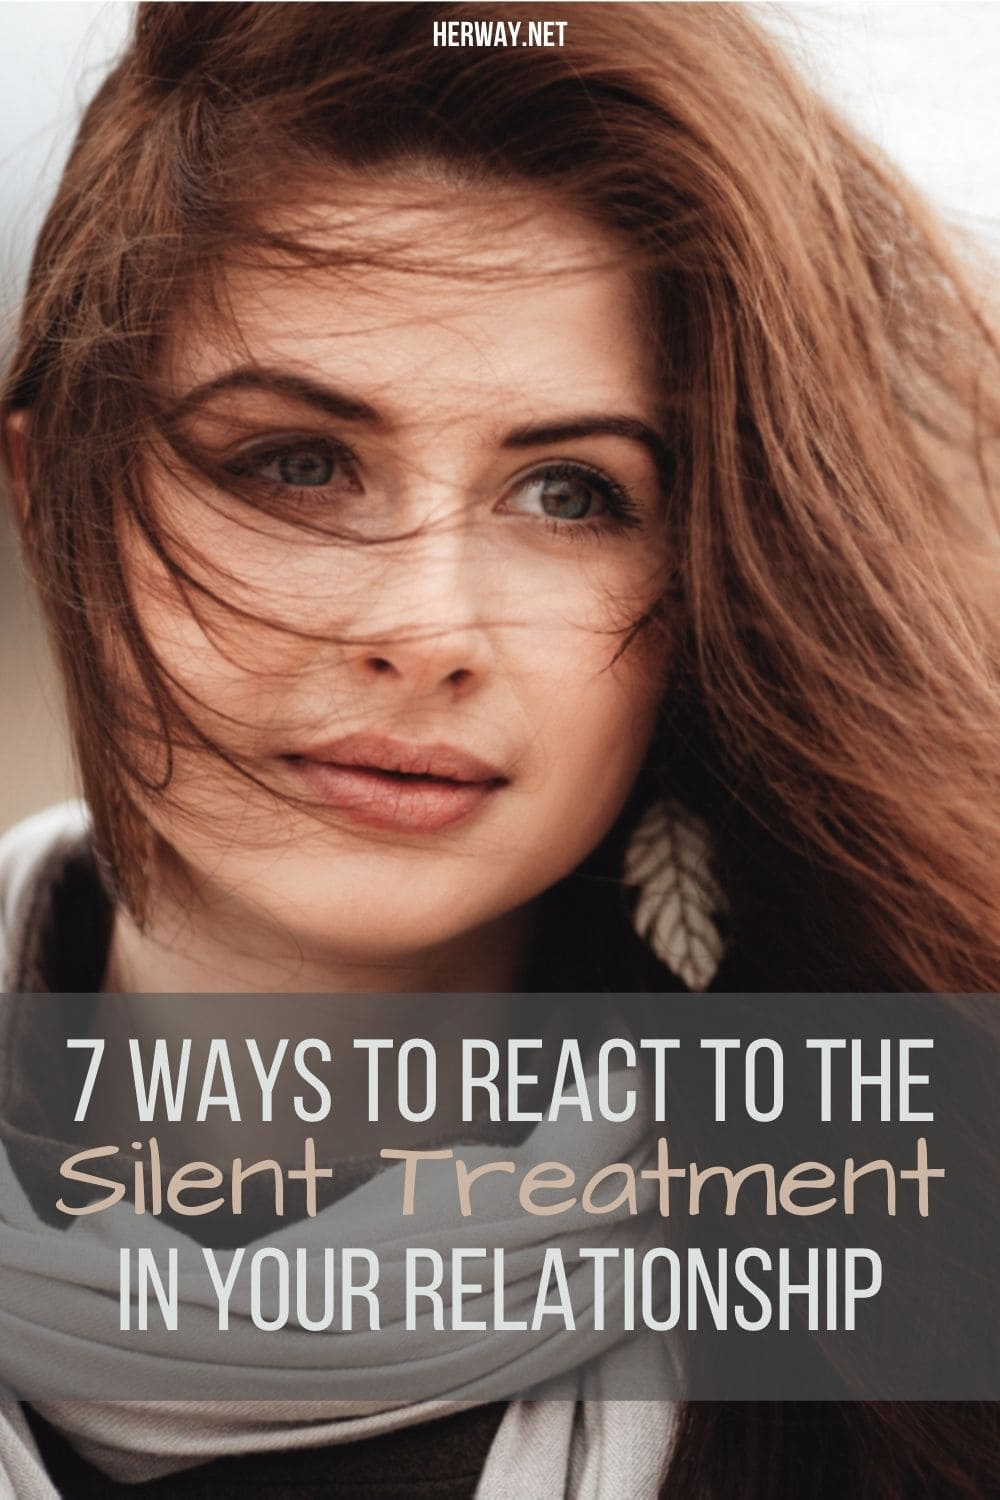 7 Ways To React To The Silent Treatment In Your Relationship